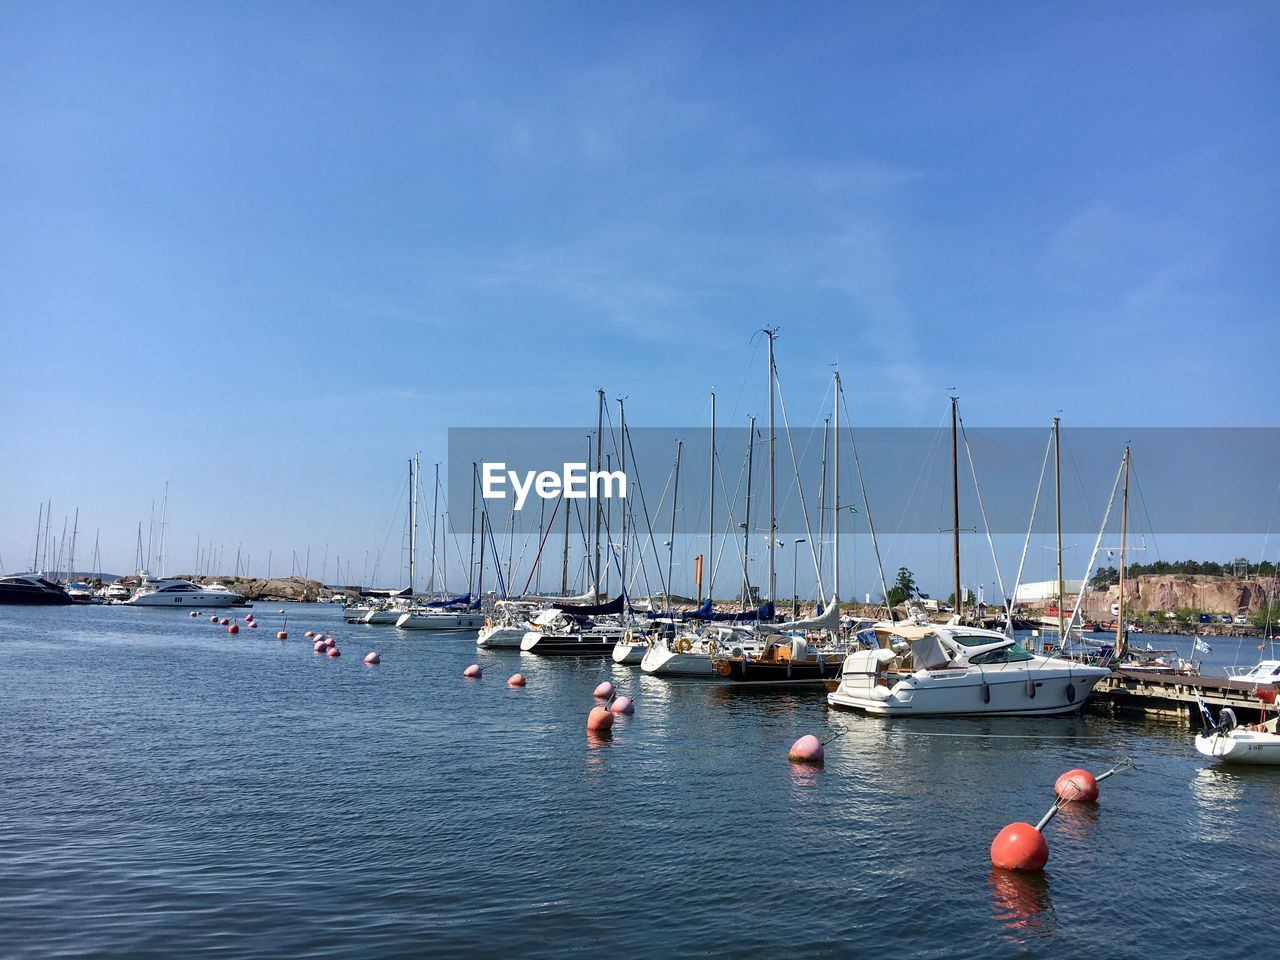 water, nautical vessel, transportation, sky, mode of transportation, sailboat, waterfront, sea, pole, mast, nature, harbor, day, blue, moored, beauty in nature, no people, scenics - nature, outdoors, yacht, marina